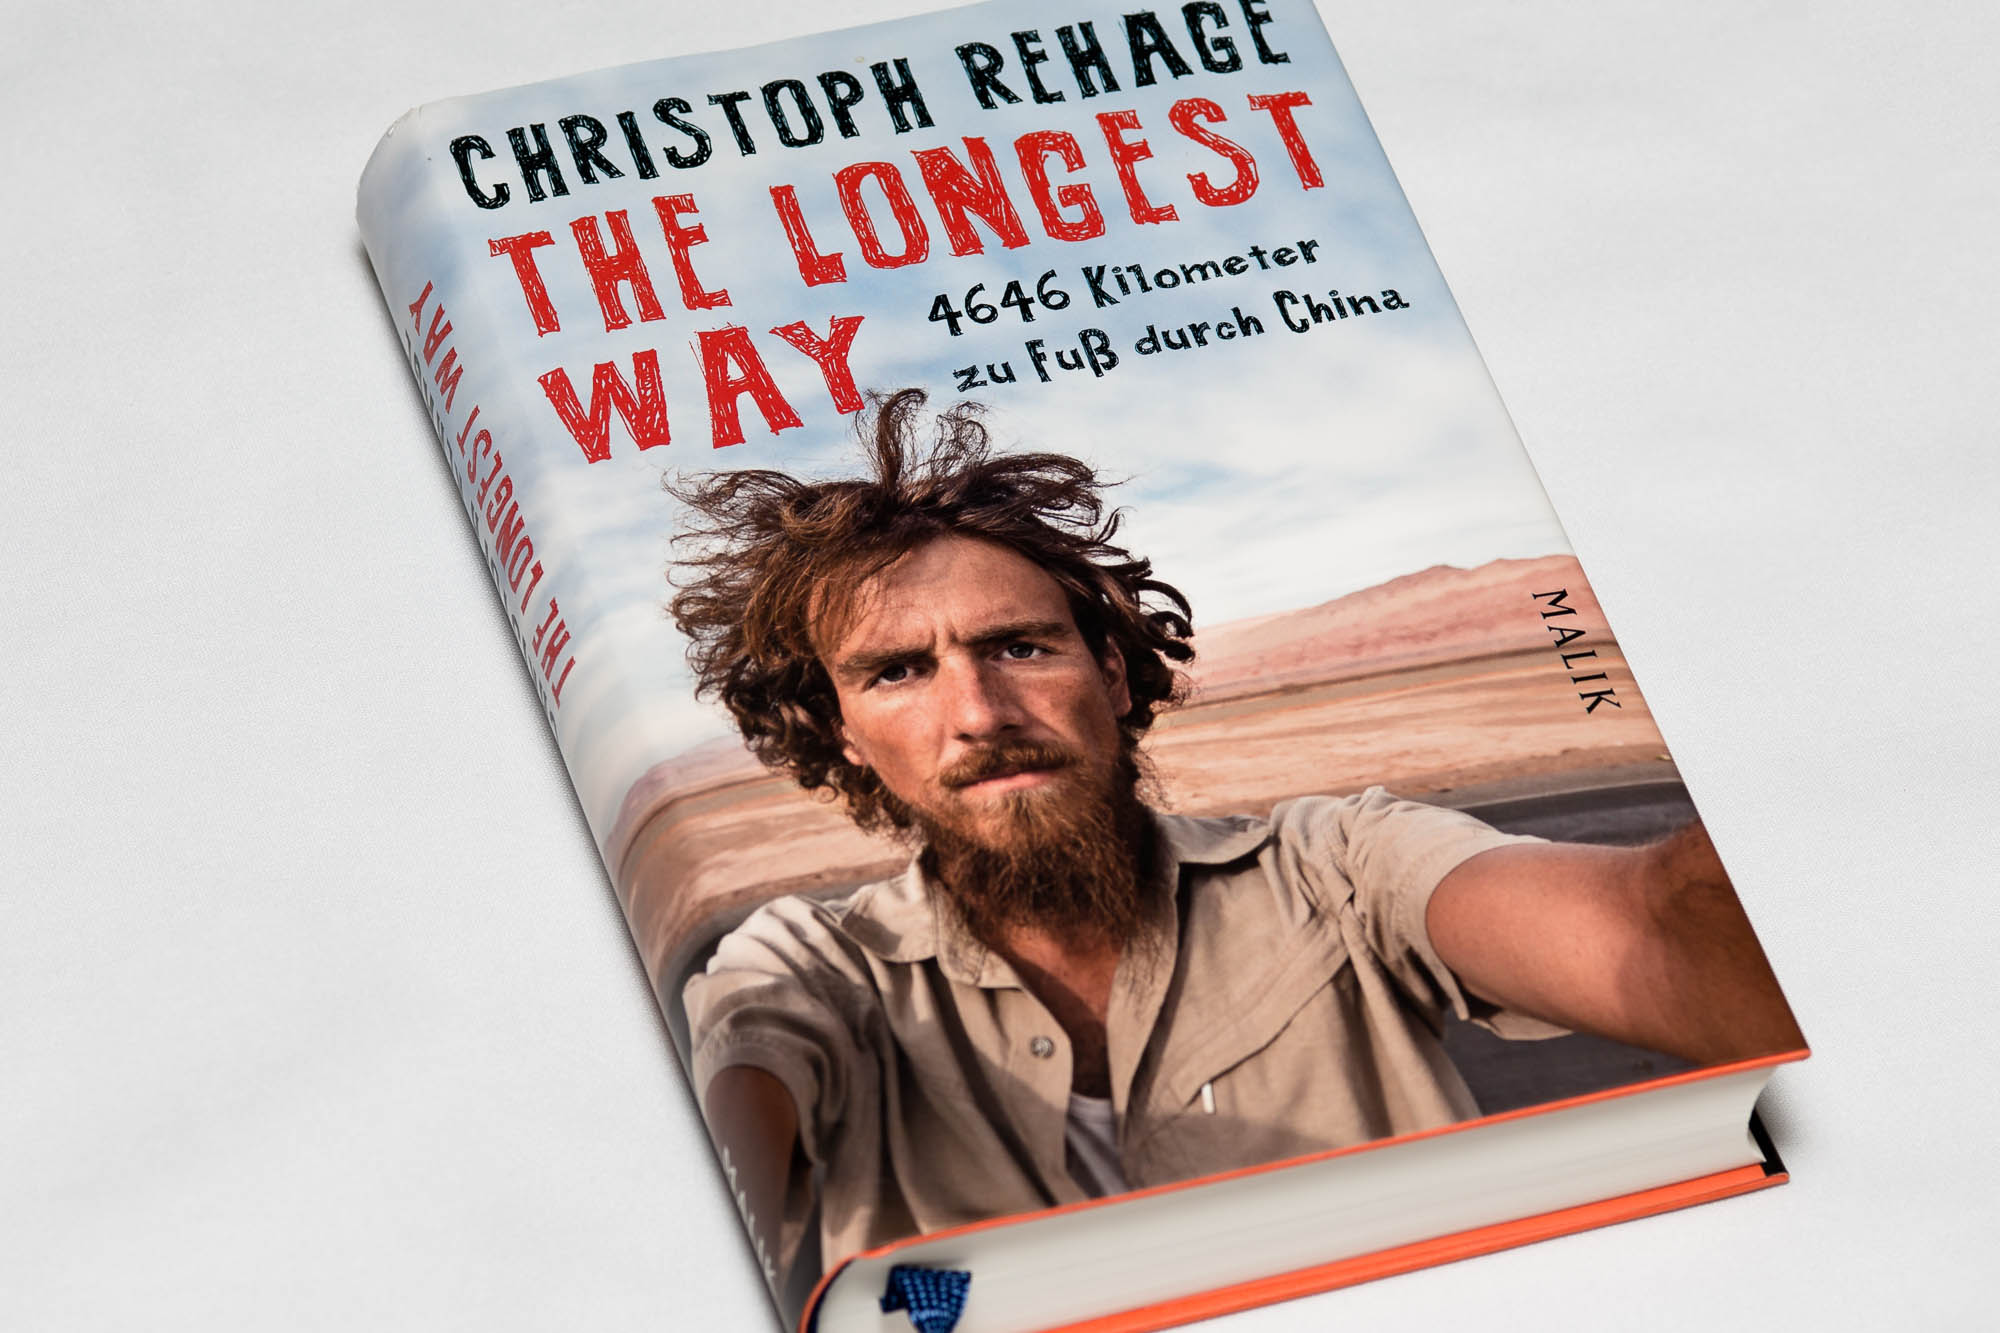 The Longest Way book